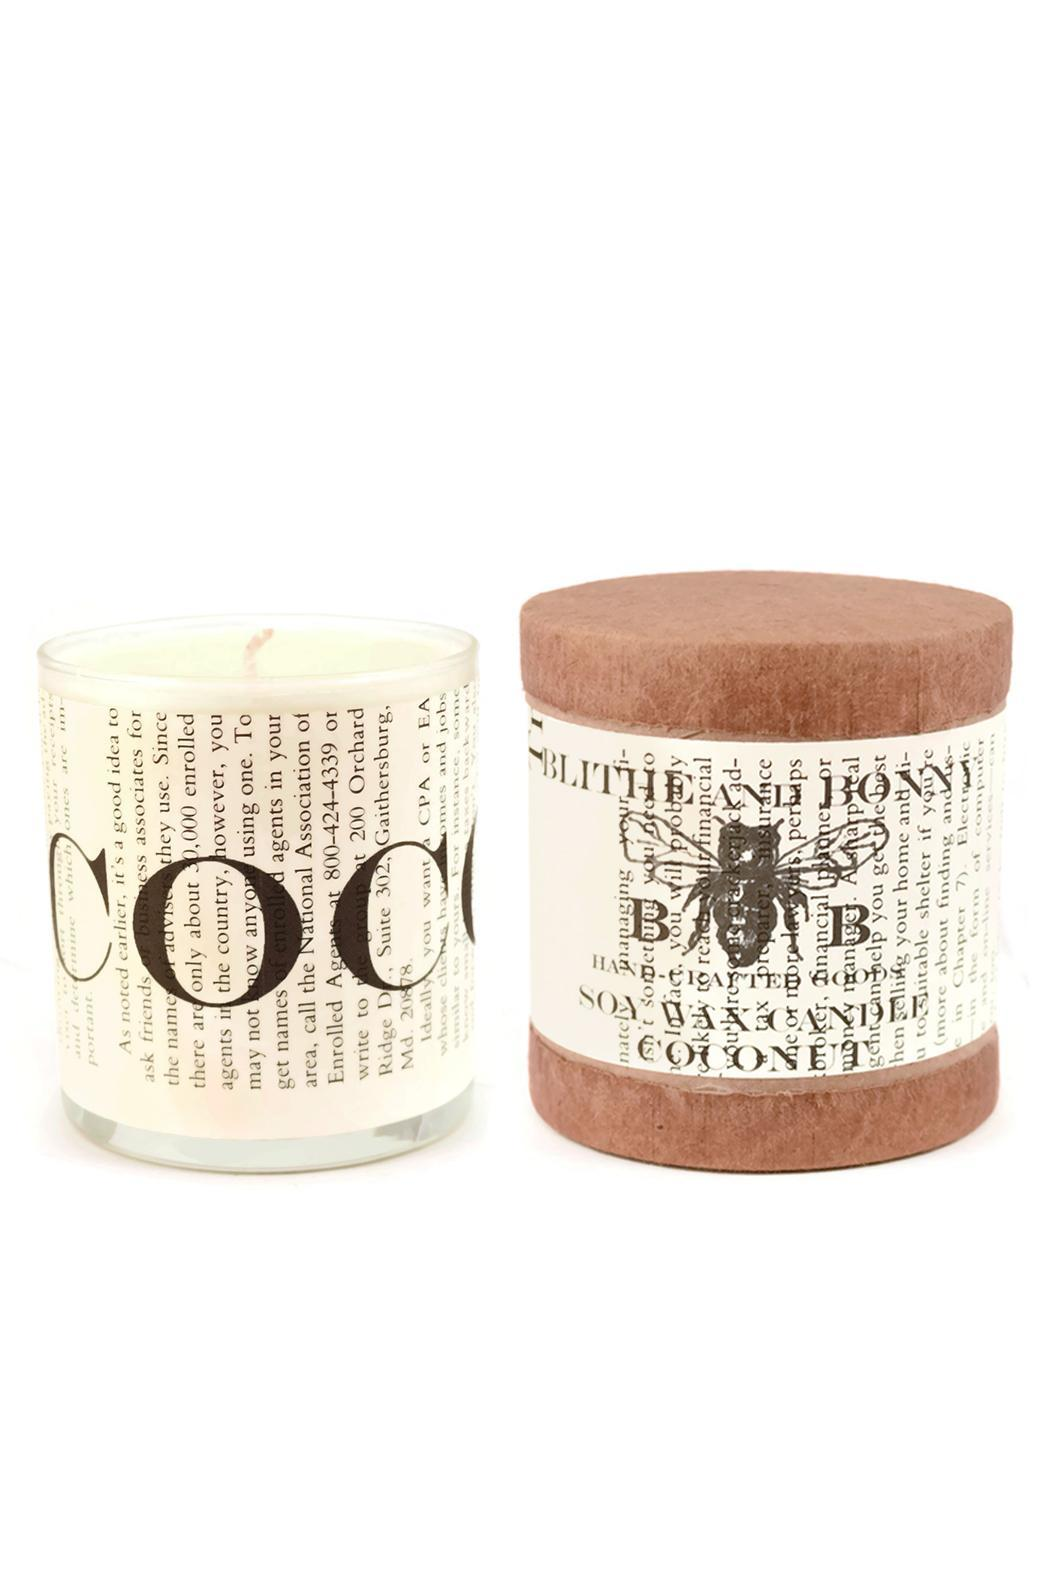 Blithe and Bonny Coconut Candle - Main Image